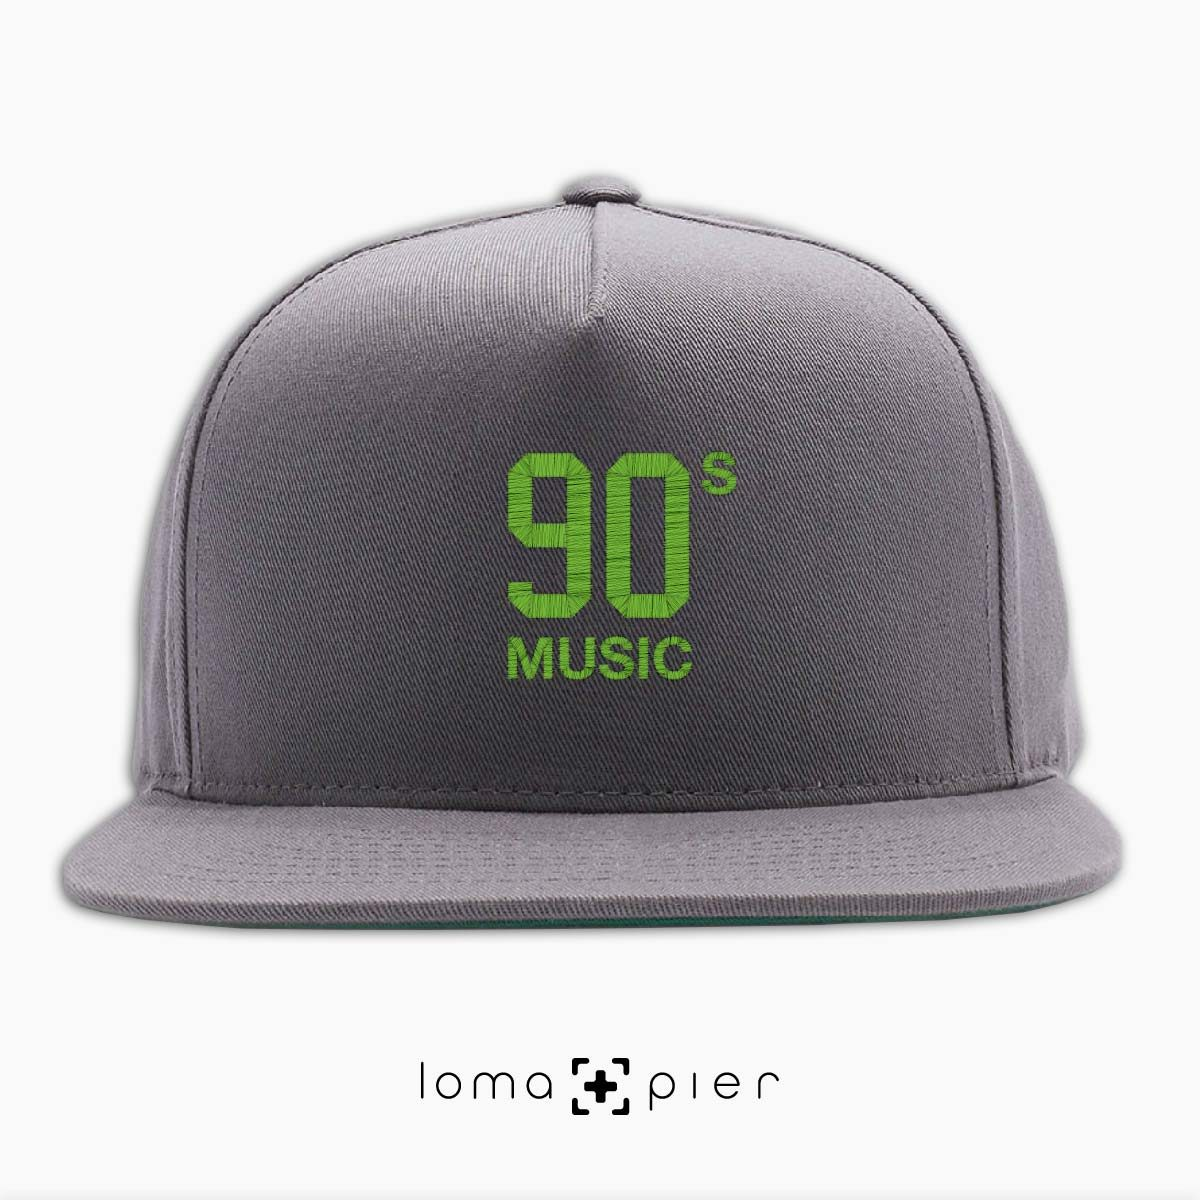 90's MUSIC typography embroidered on a grey classic snapback hat with lime green thread by loma+pier hat store